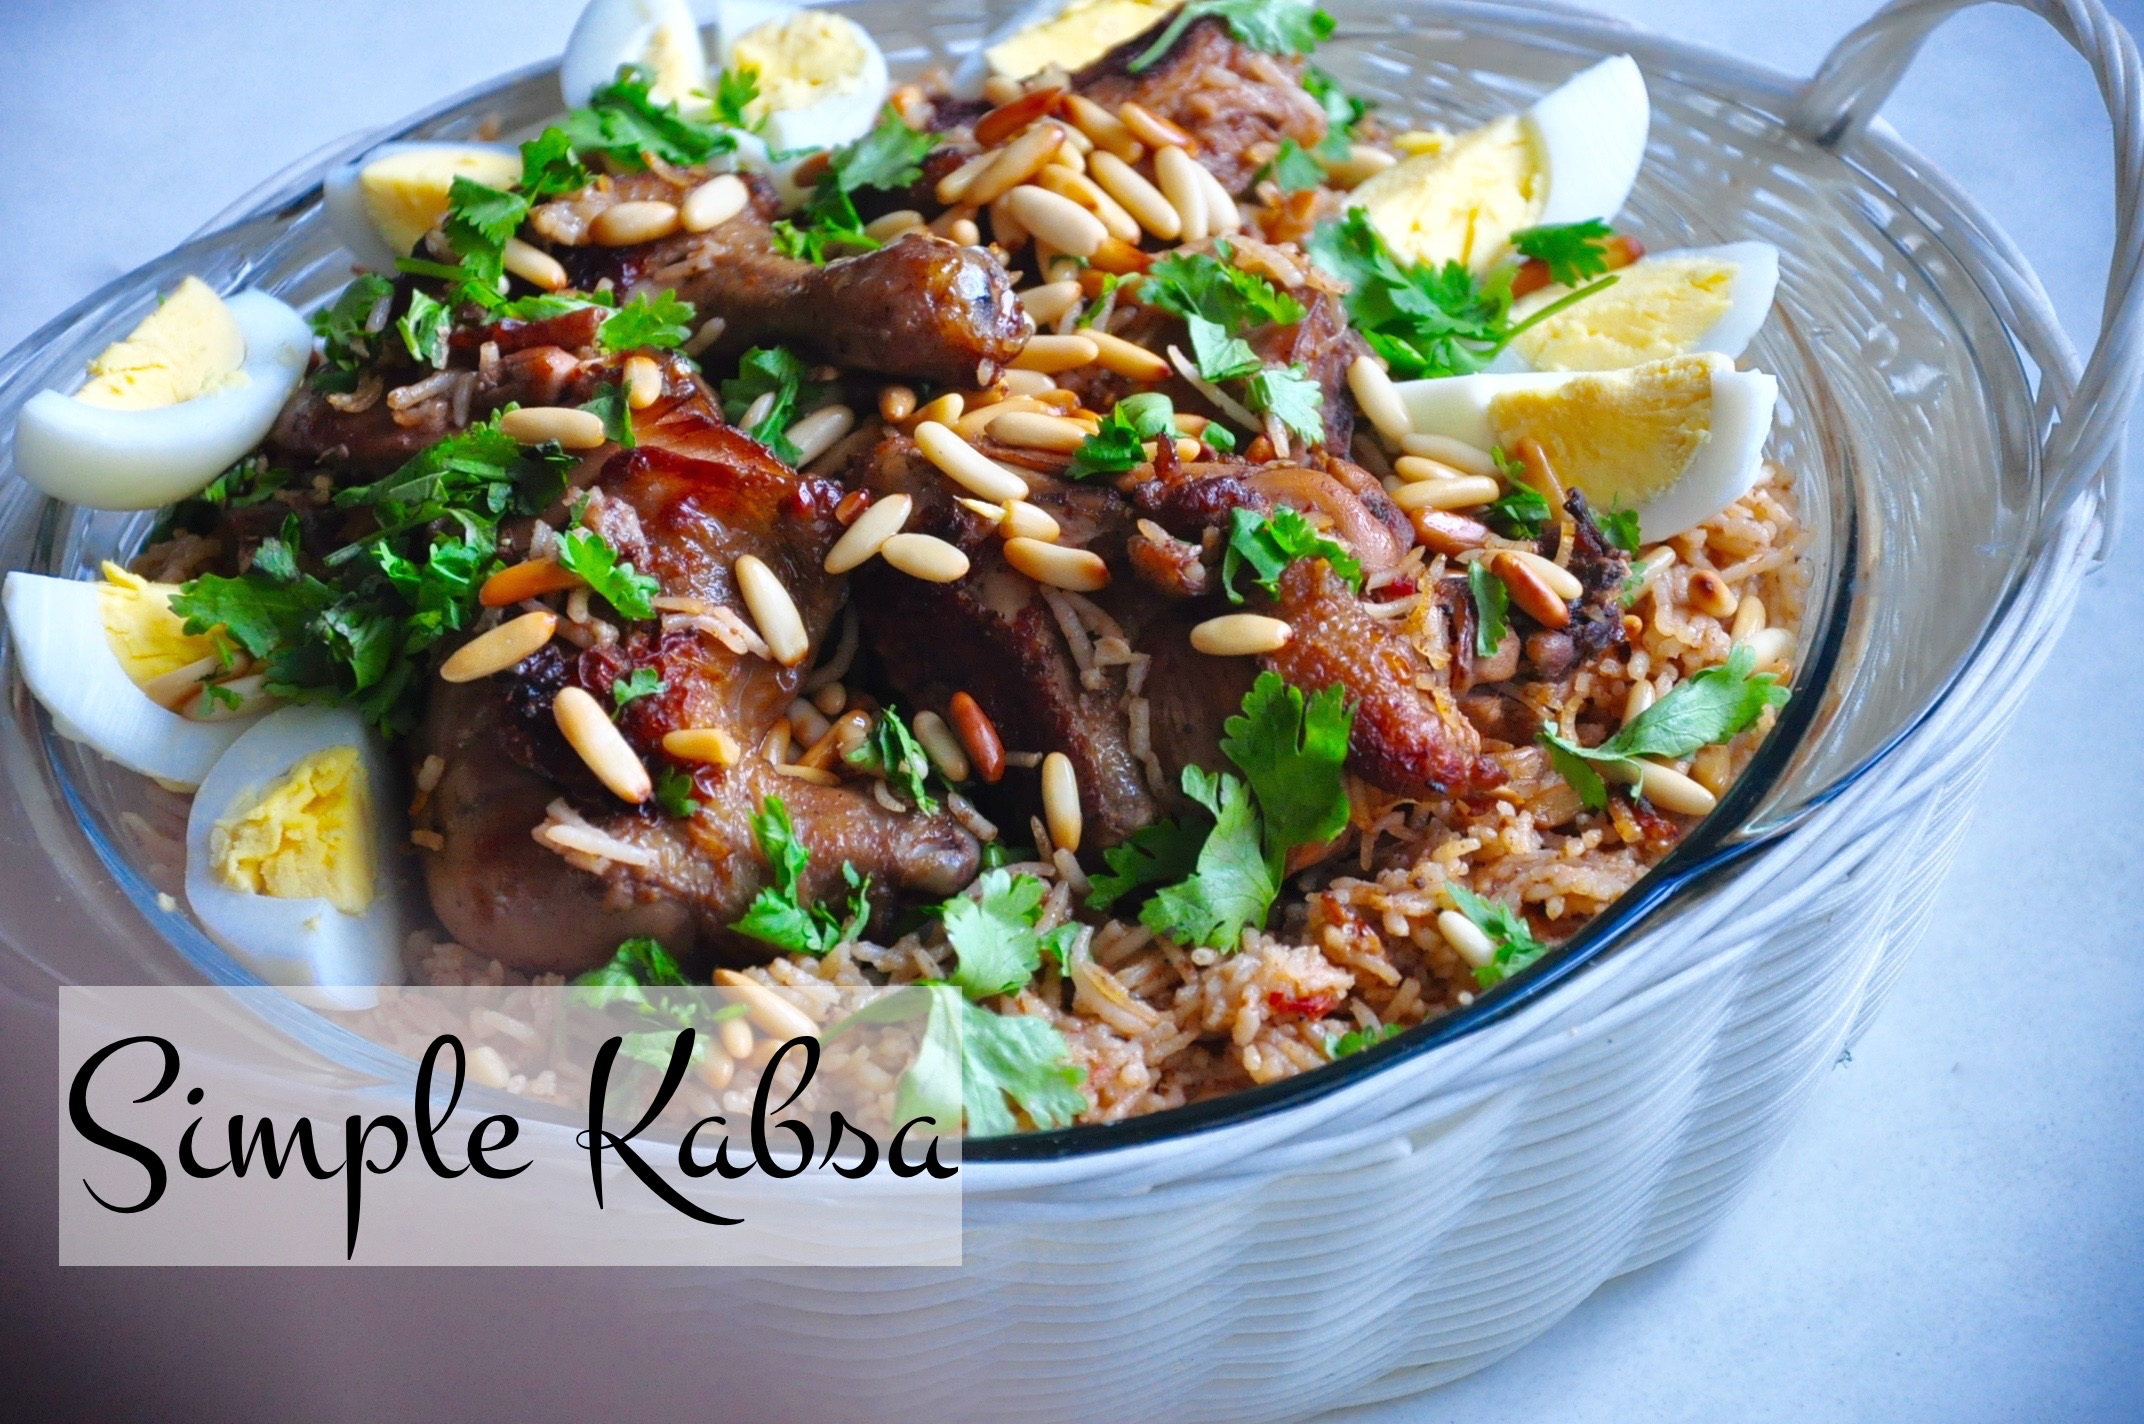 Simple Kabsa Saudi Arabian Fragrant Rice Recipes R Simple